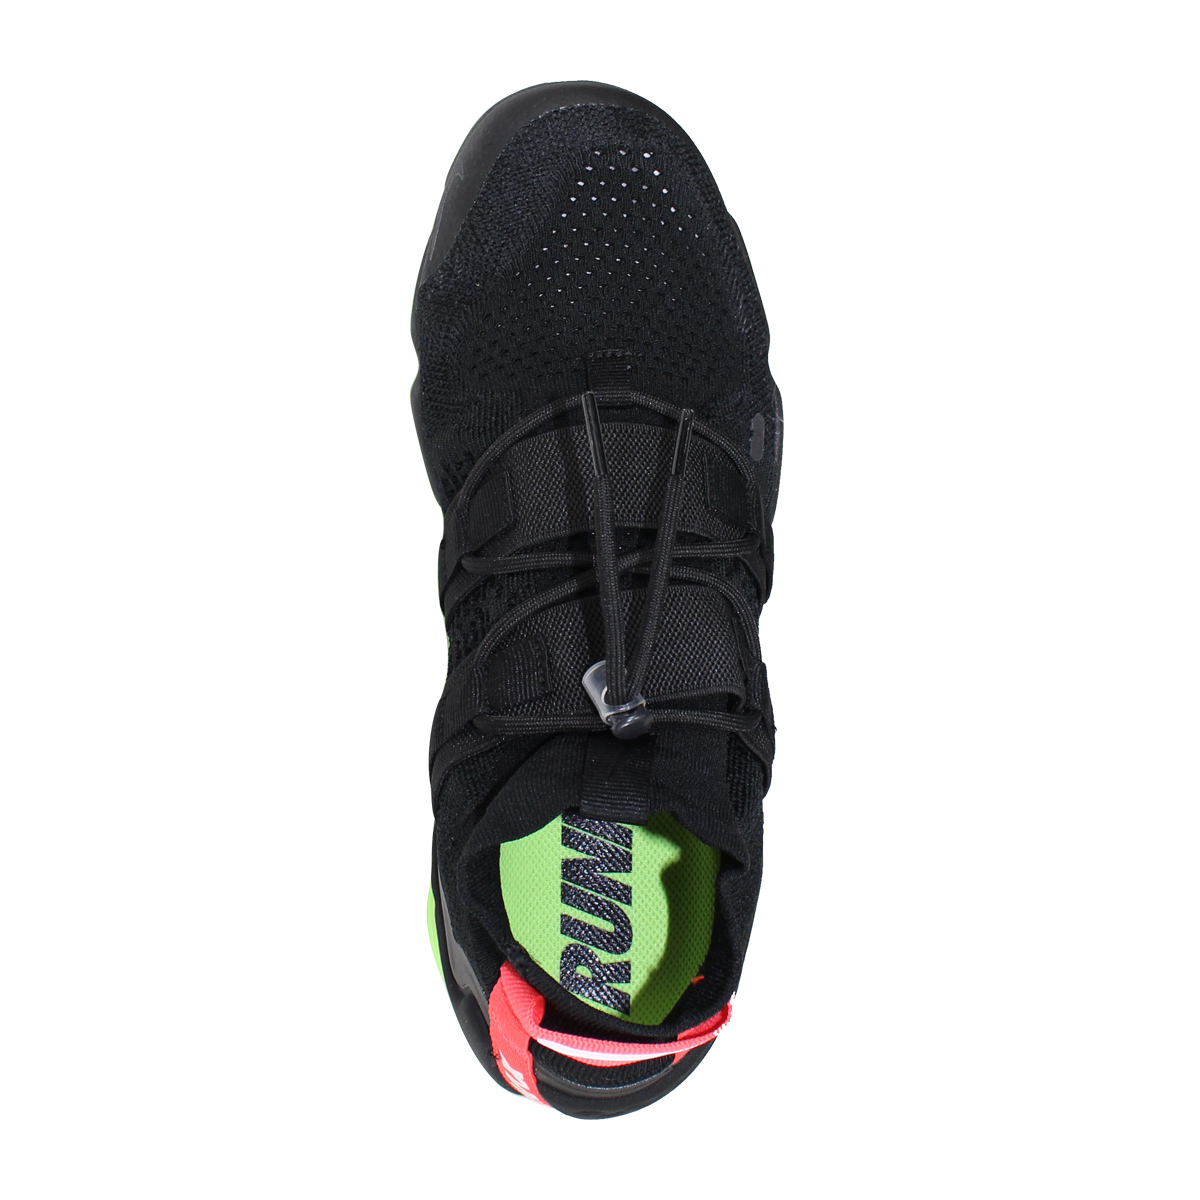 newest af038 e0ab3 NIKE AIR VAPORMAX FLYKNIT UTILITY Nike air vapor max fried food knit  sneakers men AH6834-007 black [load planned Shinnyu load in reservation  product ...